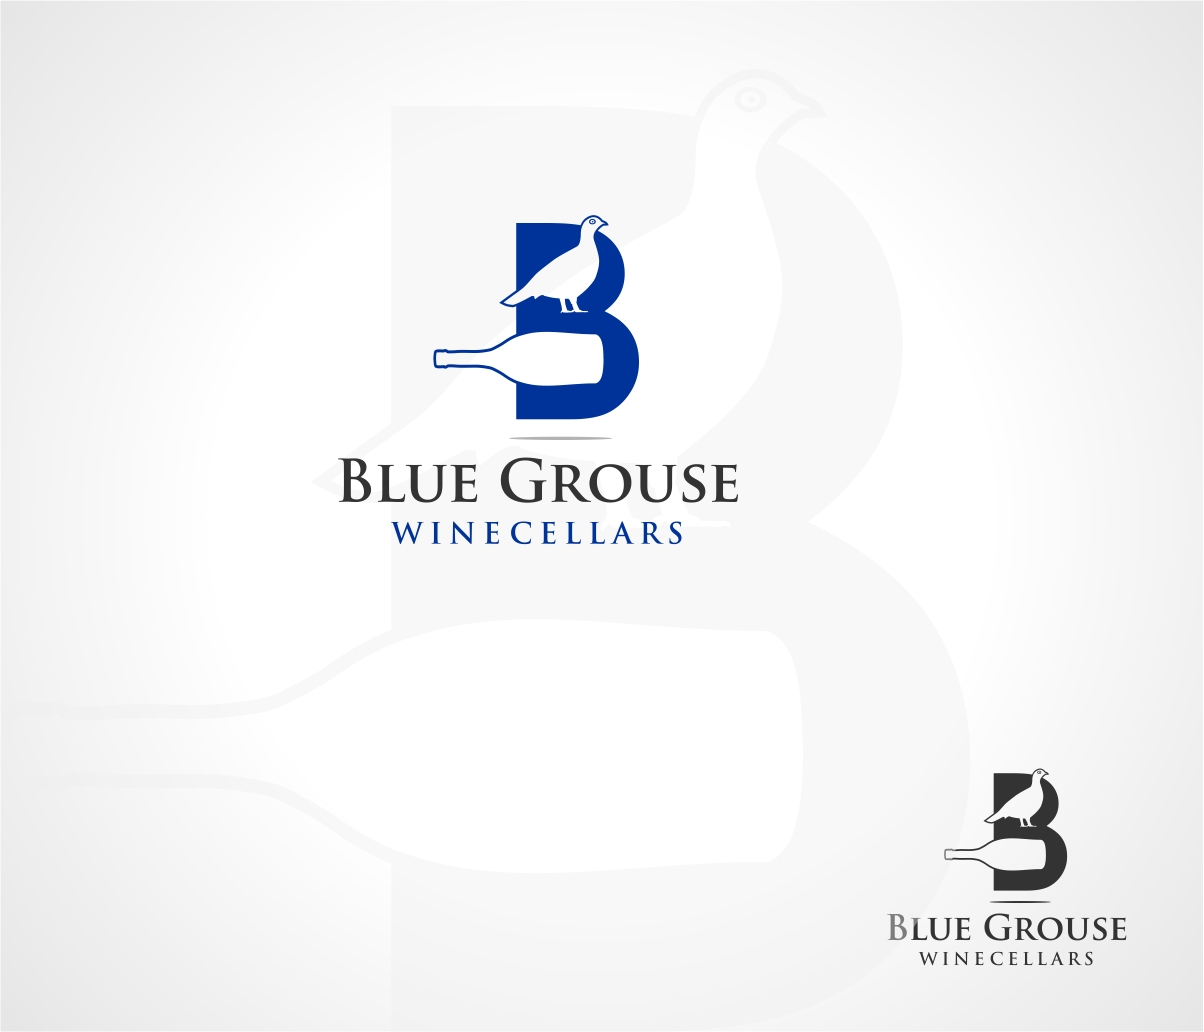 Logo Design by haidu - Entry No. 121 in the Logo Design Contest Creative Logo Design for Blue Grouse Wine Cellars.